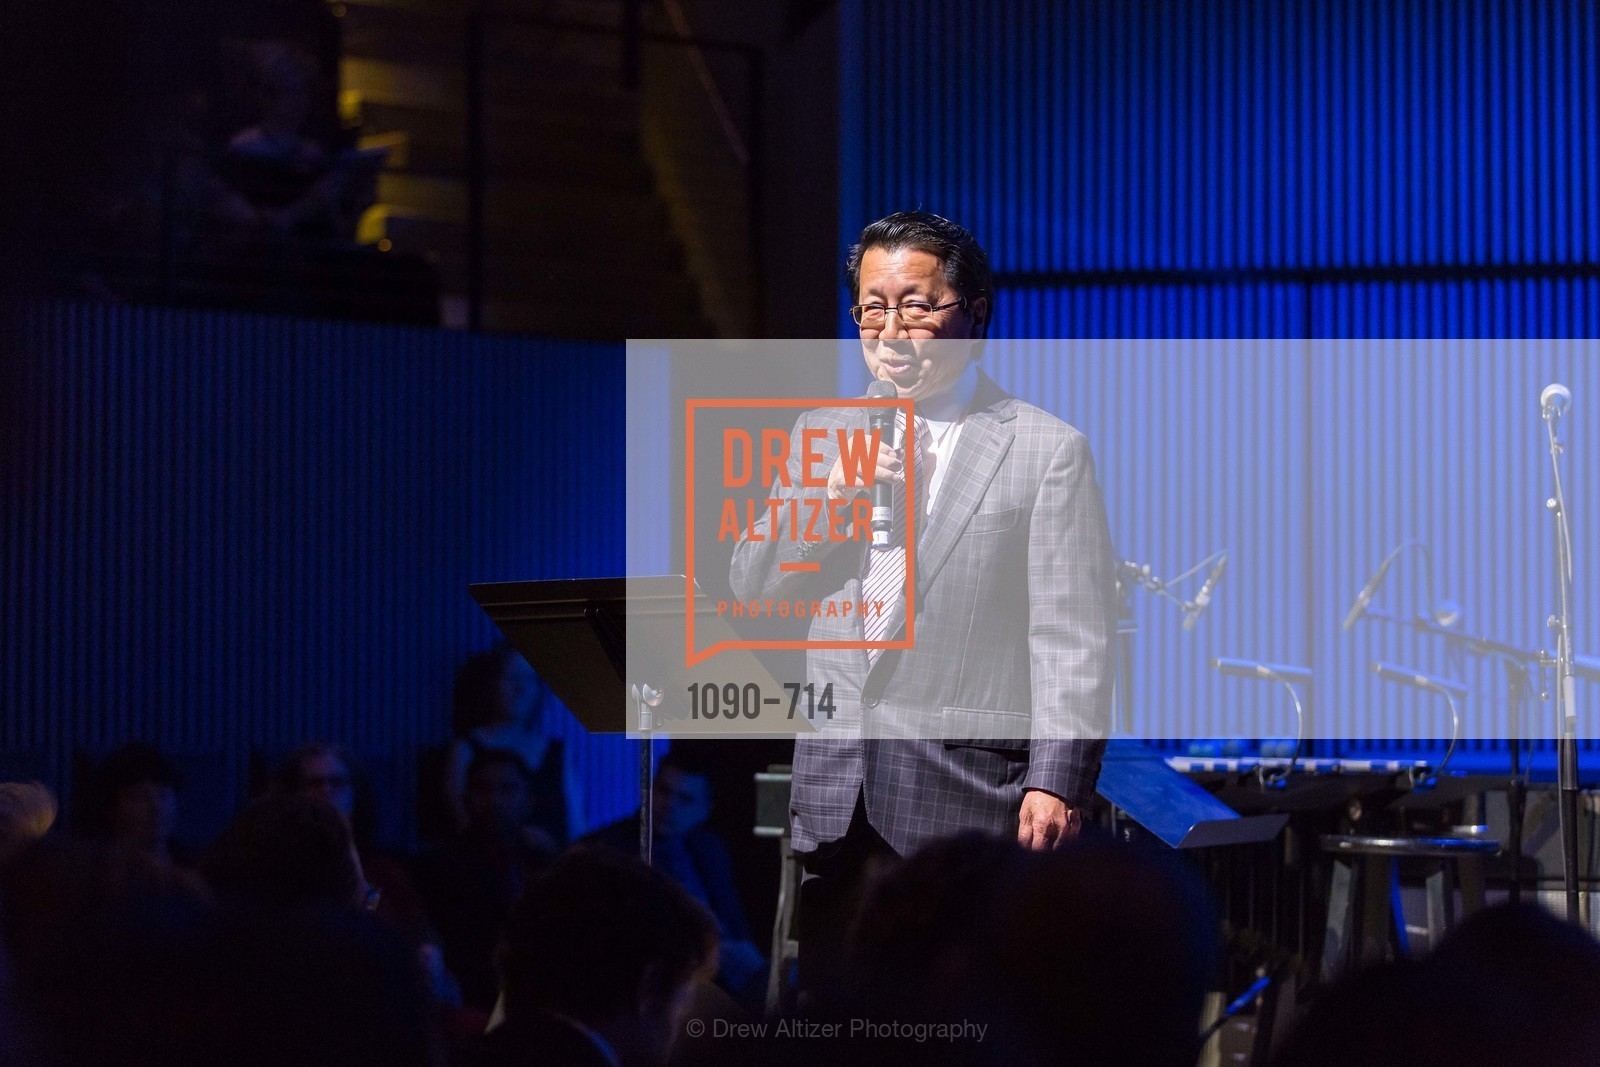 Ben Fong-Torres, SFJAZZ Gala 2015 Honors Joni Mitchell with Lifetime Achievement Award, US, May 9th, 2015,Drew Altizer, Drew Altizer Photography, full-service agency, private events, San Francisco photographer, photographer california